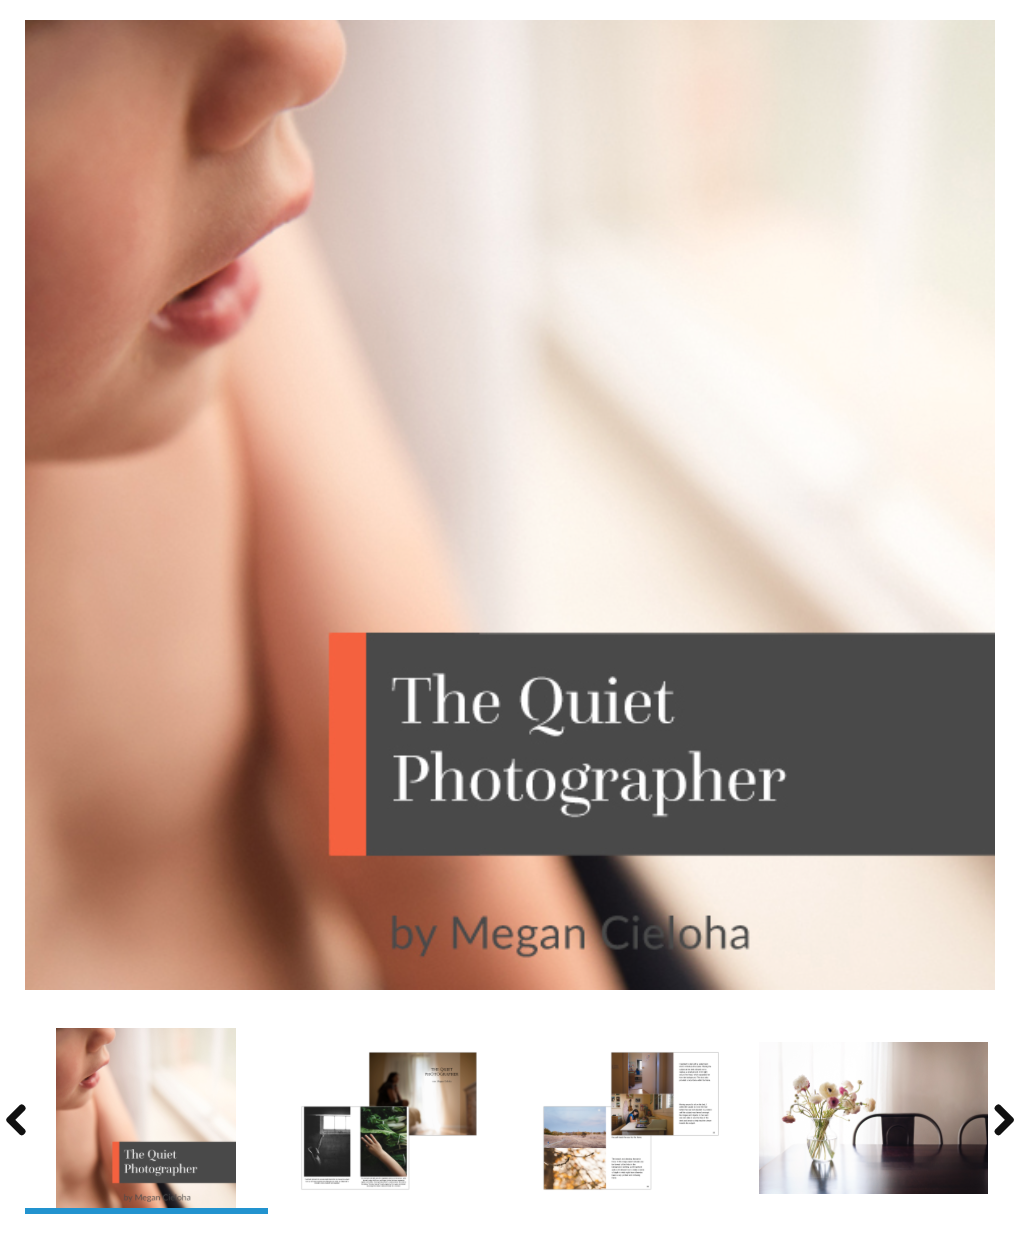 An awesome guide to being an observant photographer by Megan Cieloha.